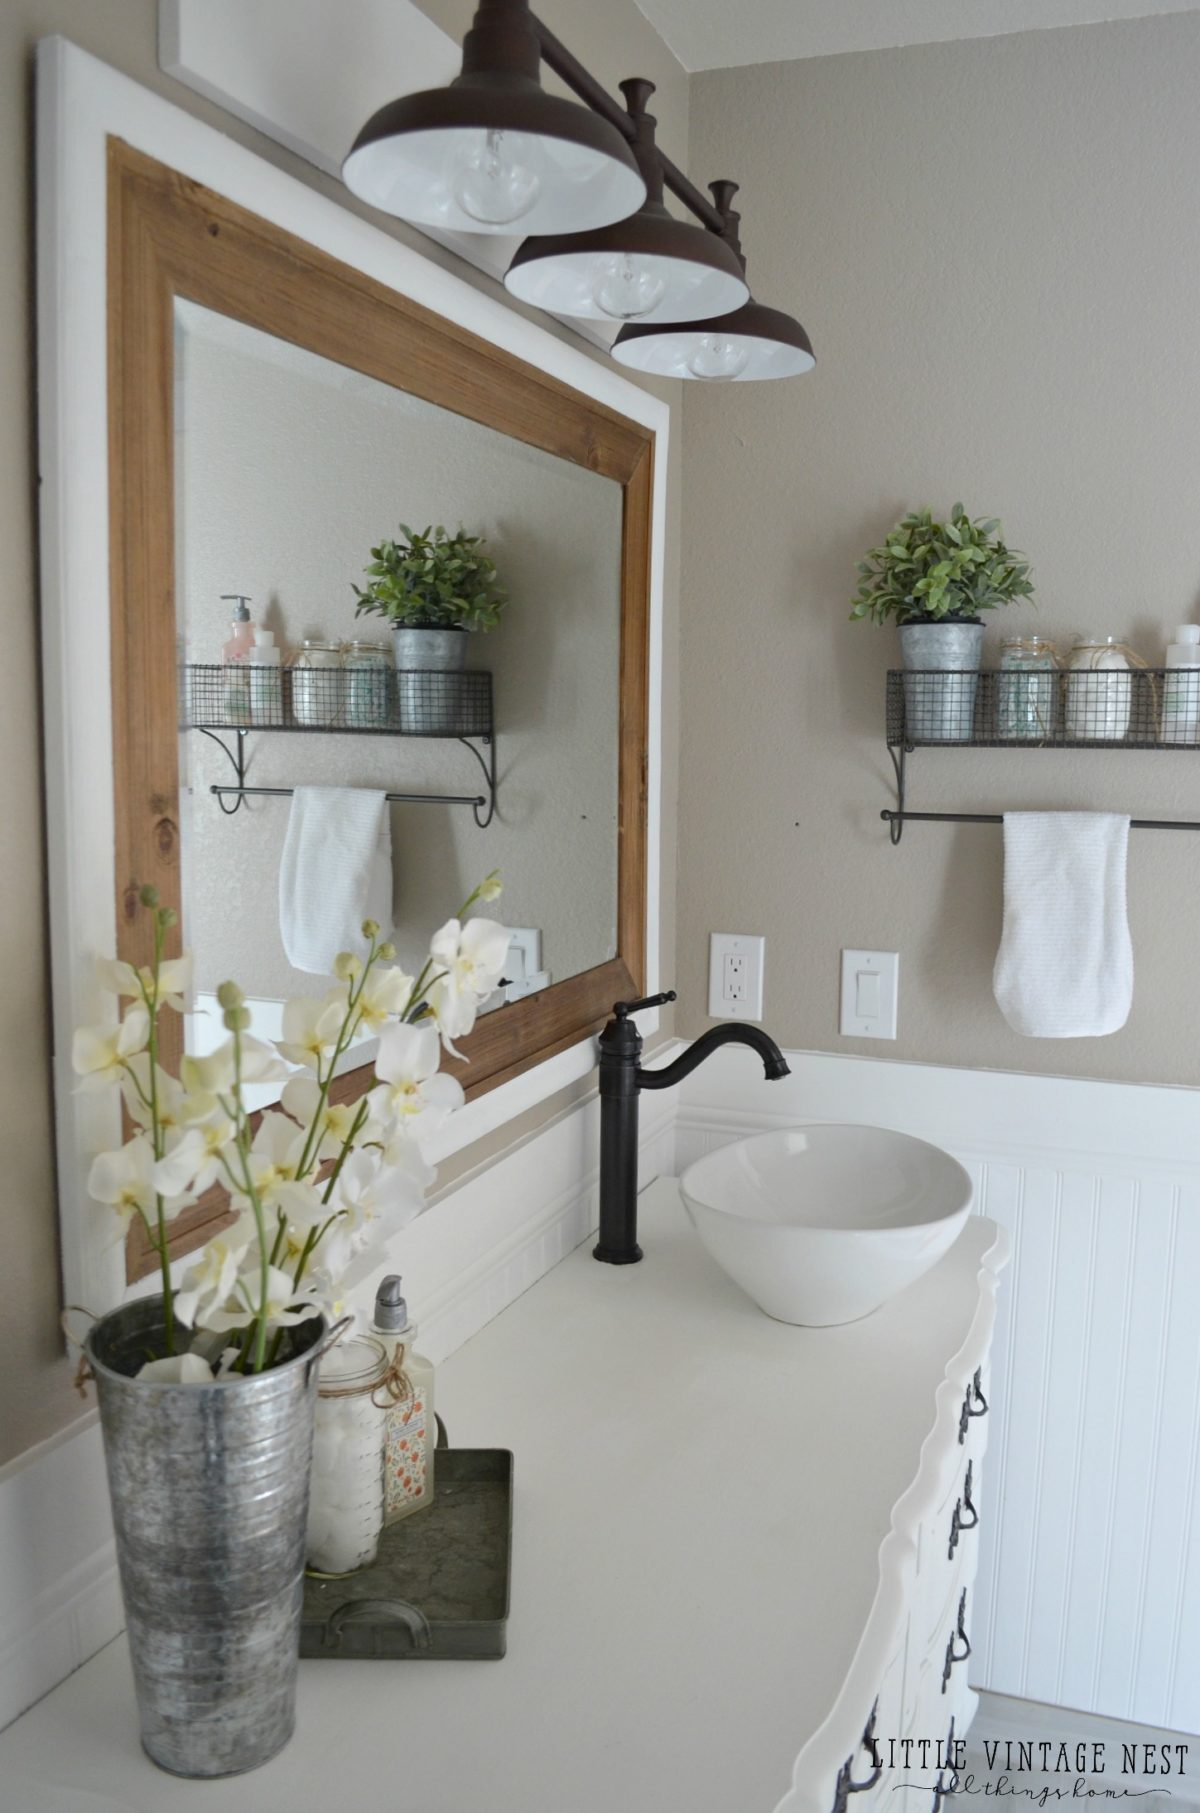 pinterest cottage pin farmhouse bathrooms cupboards the ranch by decor kidd color on love and style cyndi house bathroom